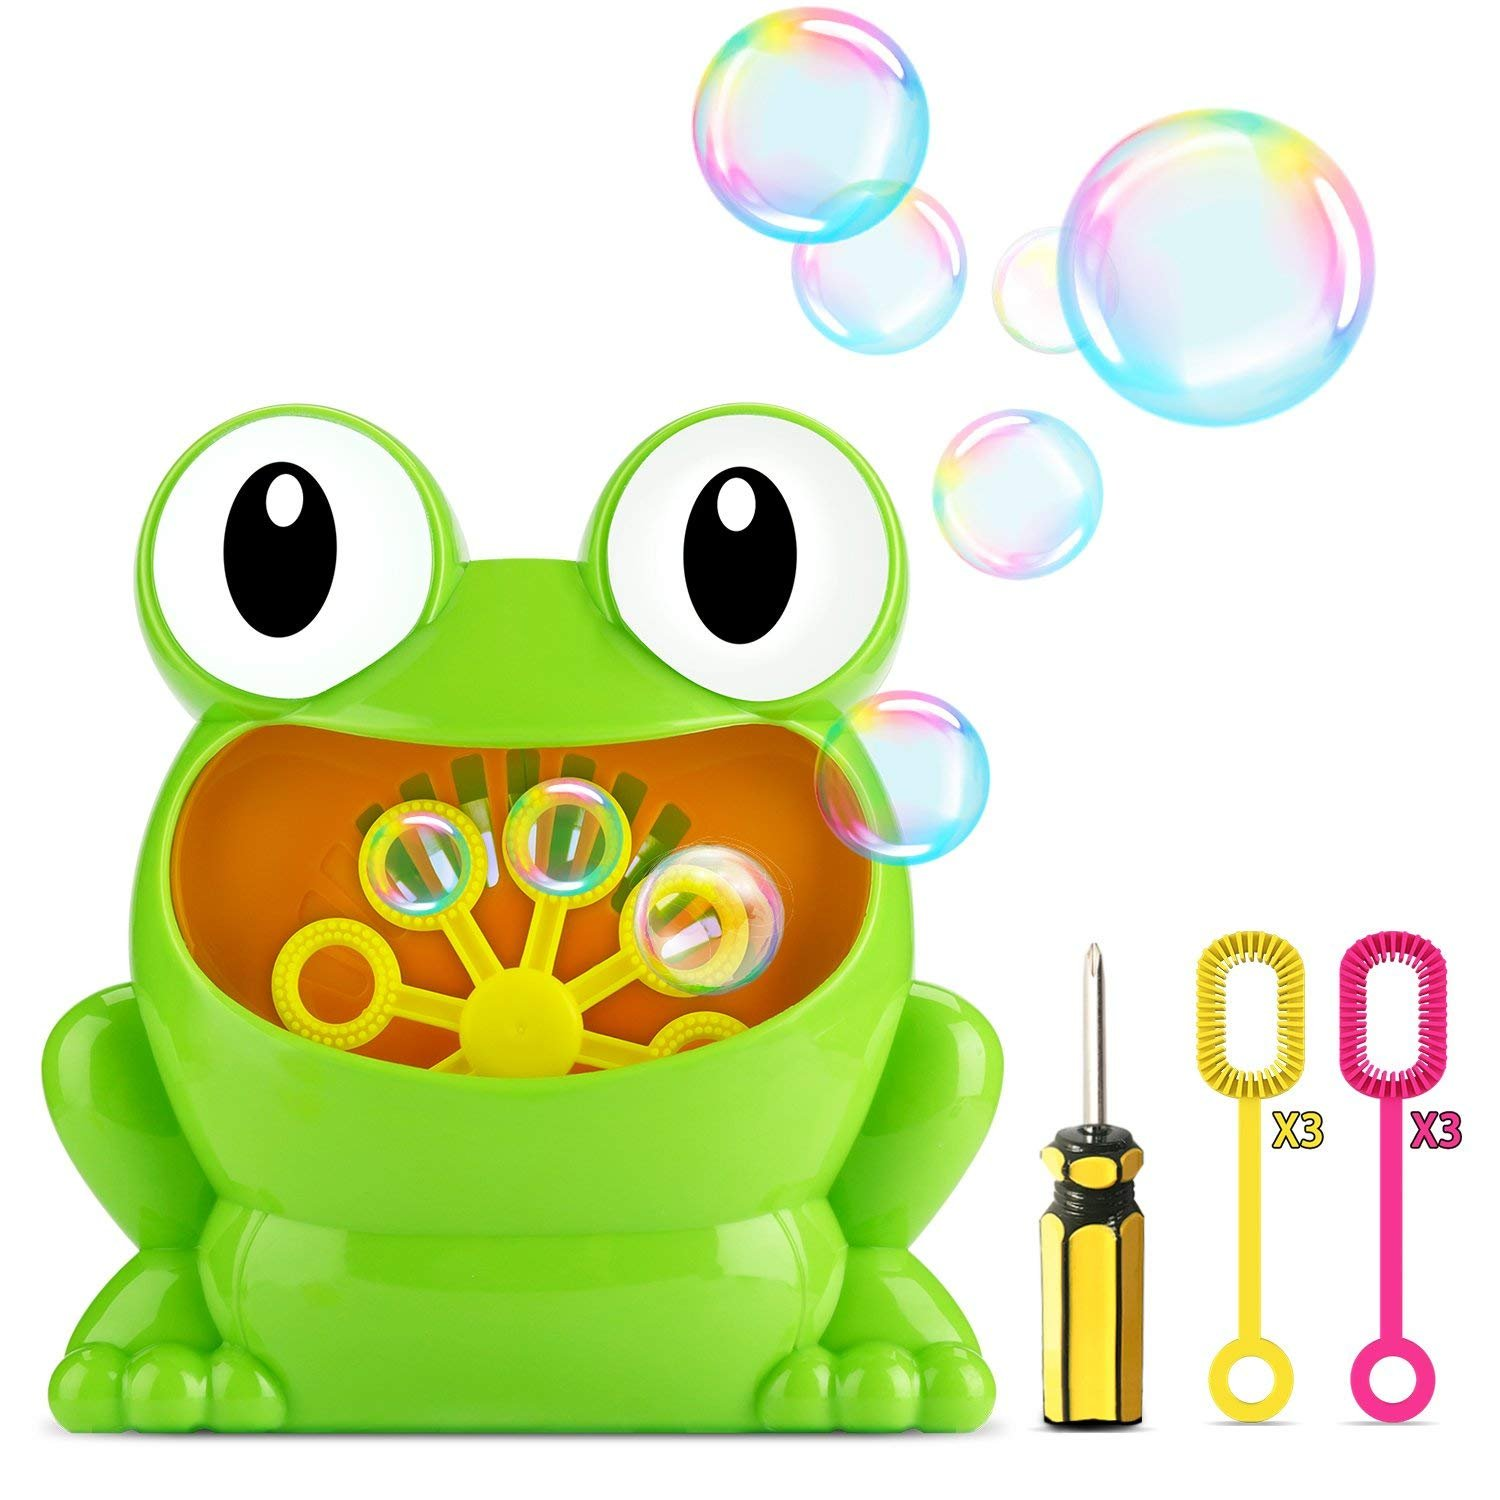 Fansteck Bubble Machine for Kids, Frog Bubble Machine Lovely Design Durable Automatic Bubble Maker, High Output Over 500 Bubbles per Minute, with Six Extra Manual Bubble Wands , Nontoxic, Easy to Use